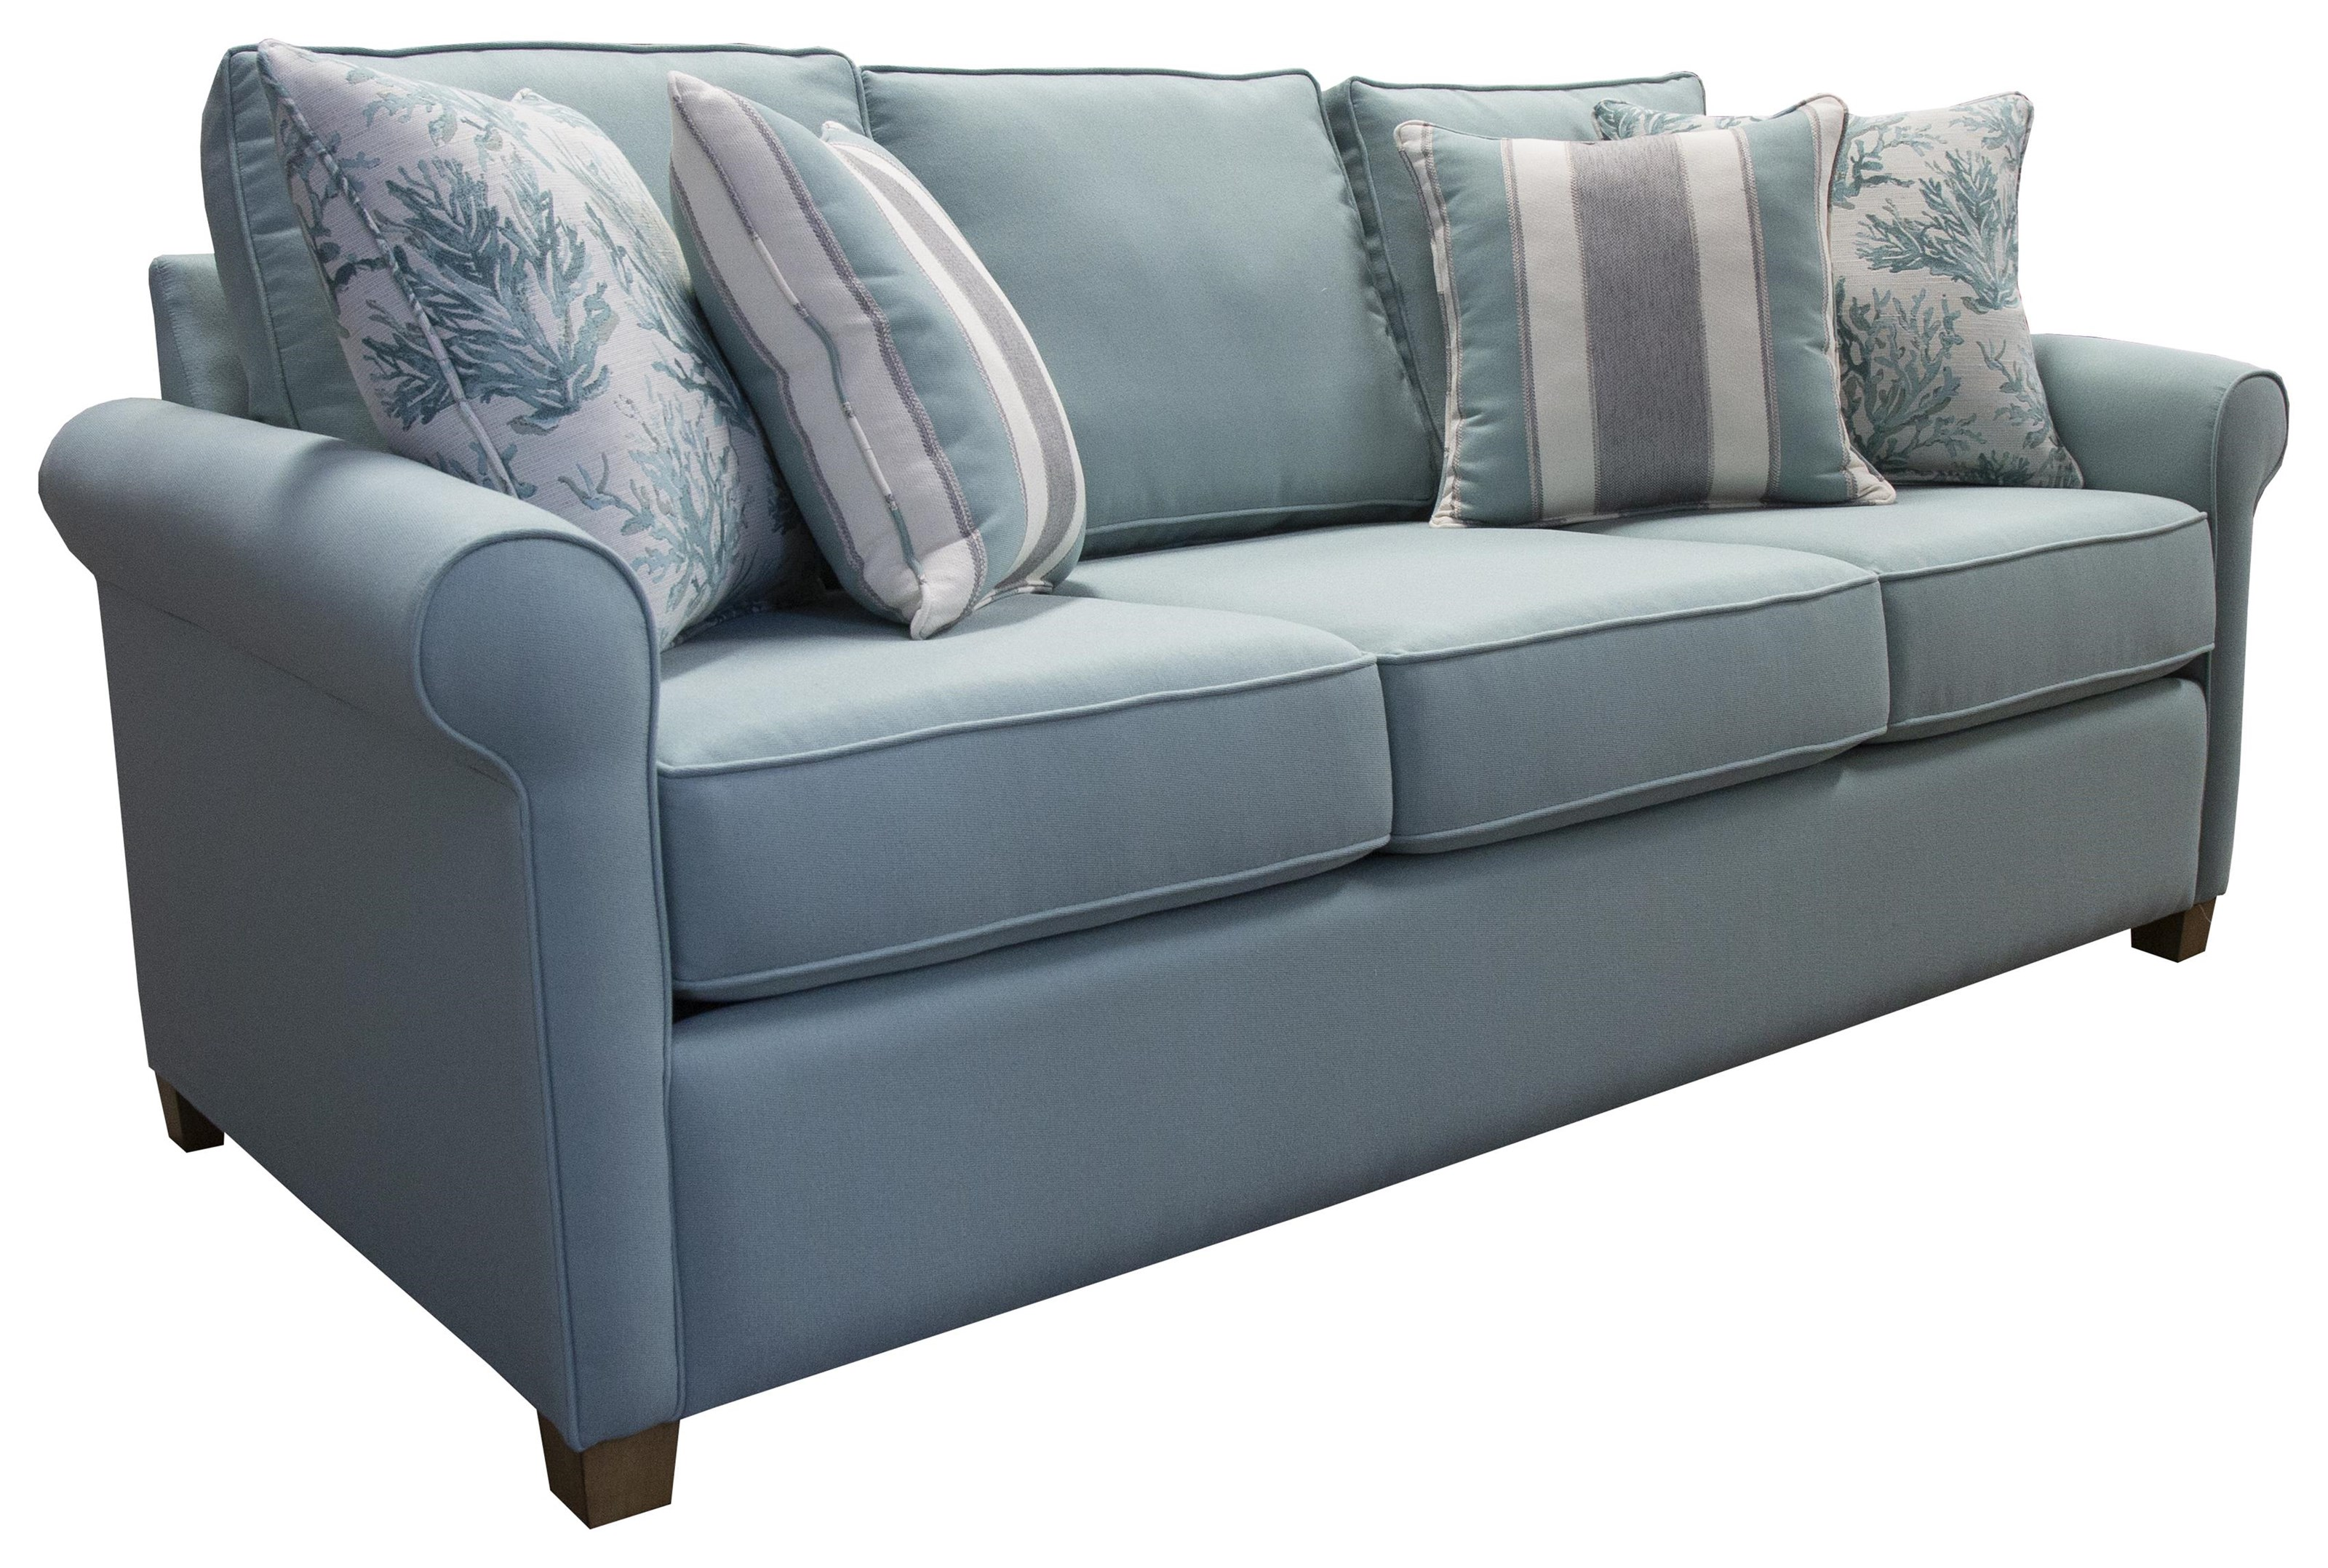 Capris 411 Sofa with Ball Arm by Capris Furniture at Baer's Furniture